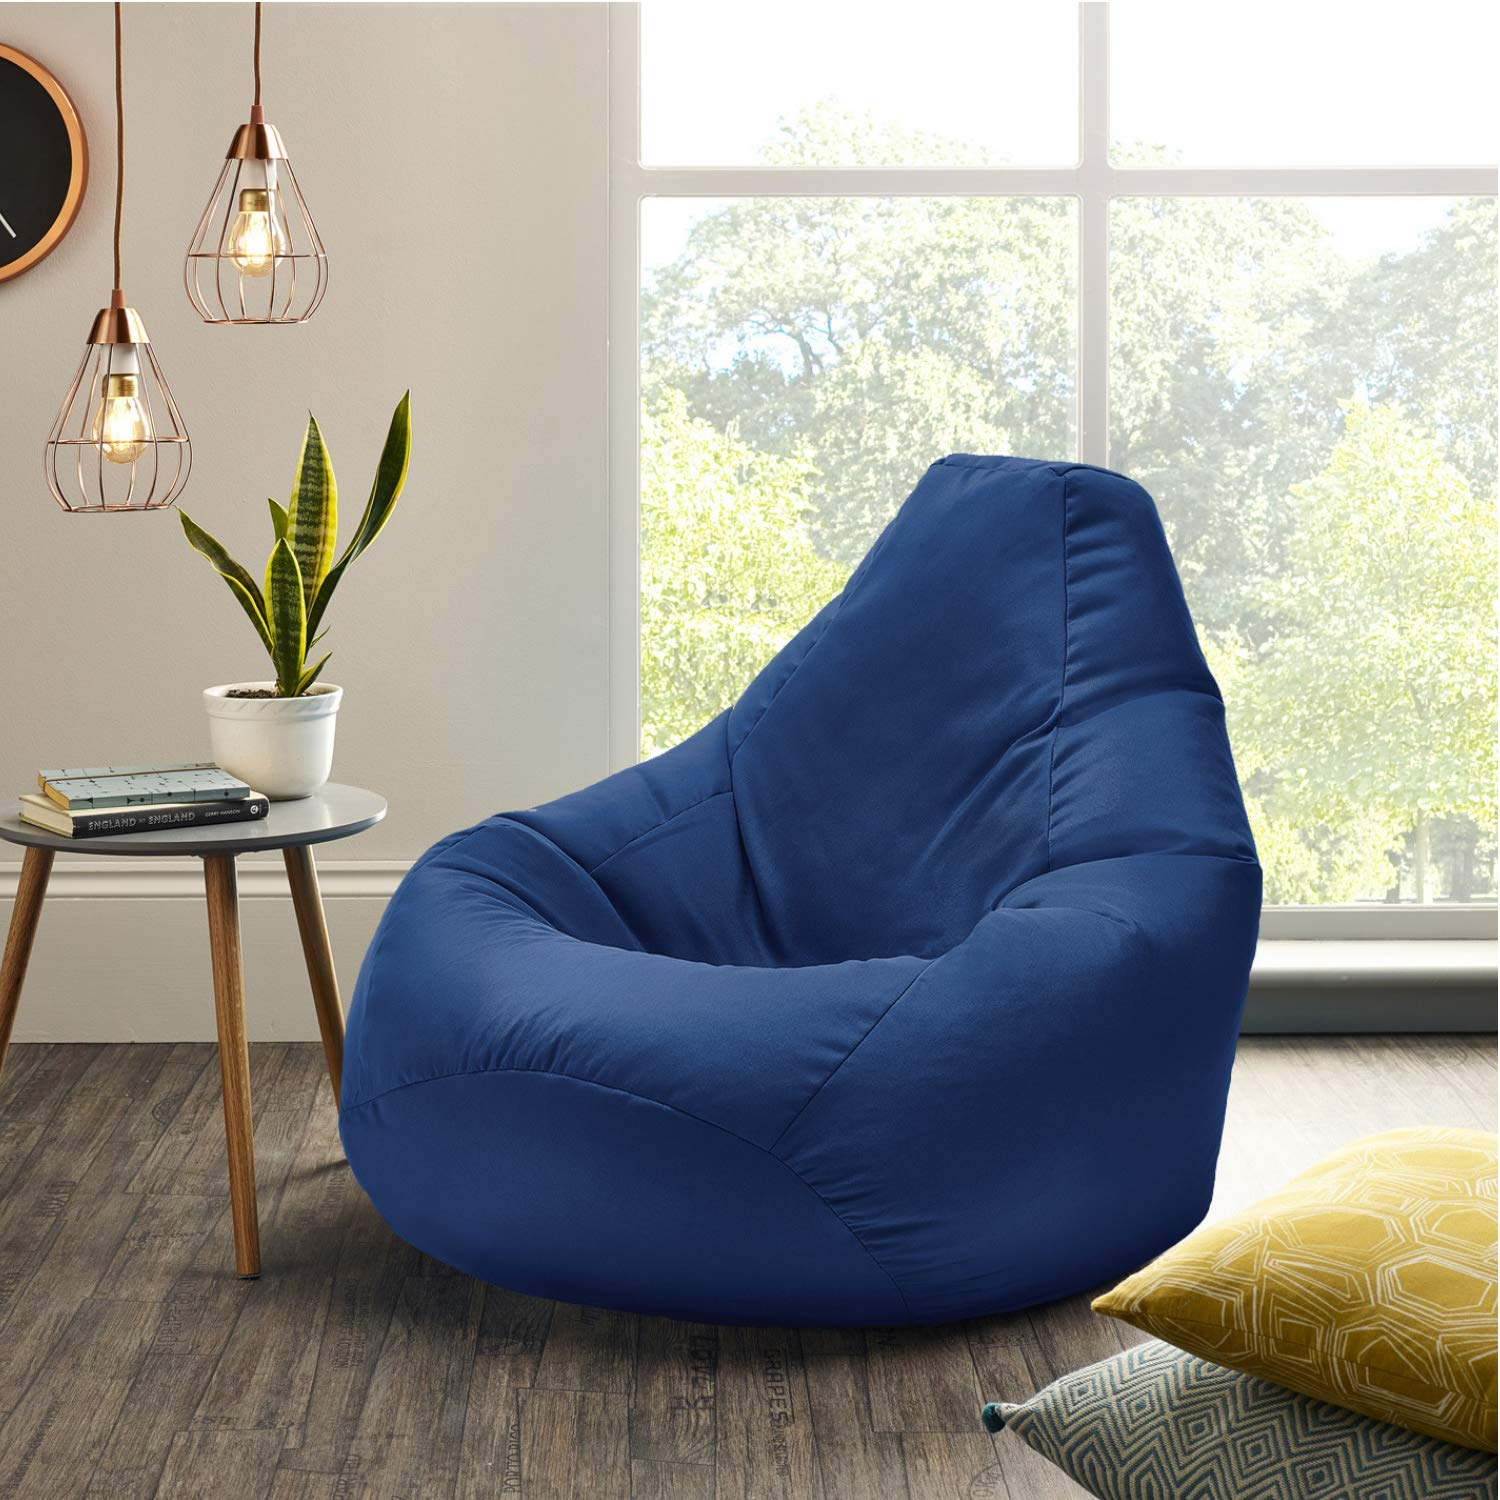 Superb Amazon Com Beautiful Beanbags Ltd Xx L Blue Highback Caraccident5 Cool Chair Designs And Ideas Caraccident5Info